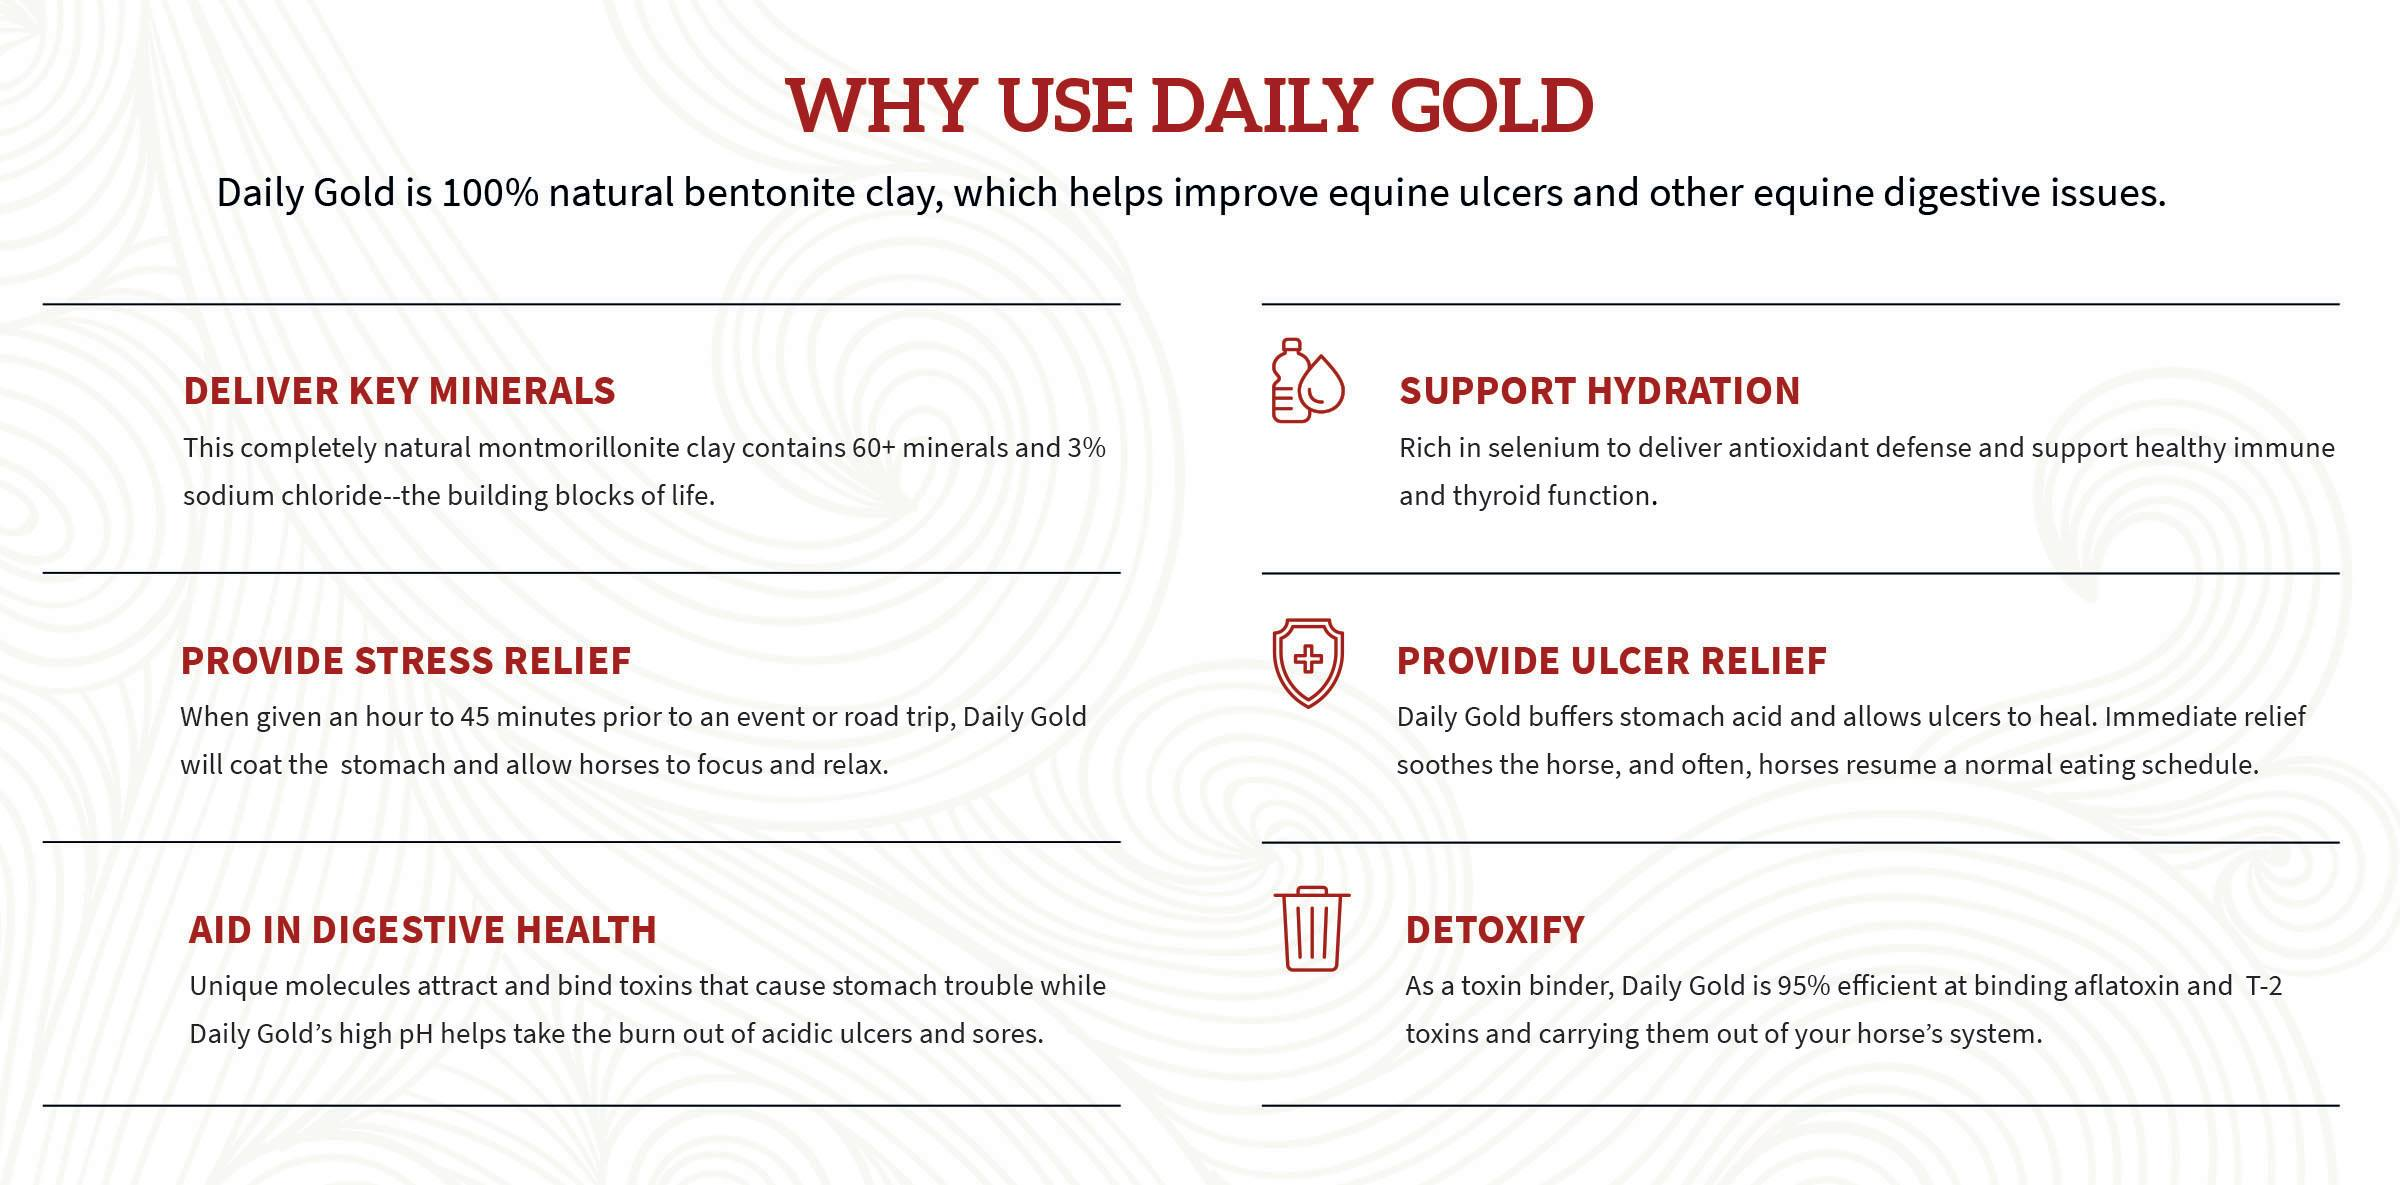 Daily Gold - why use it